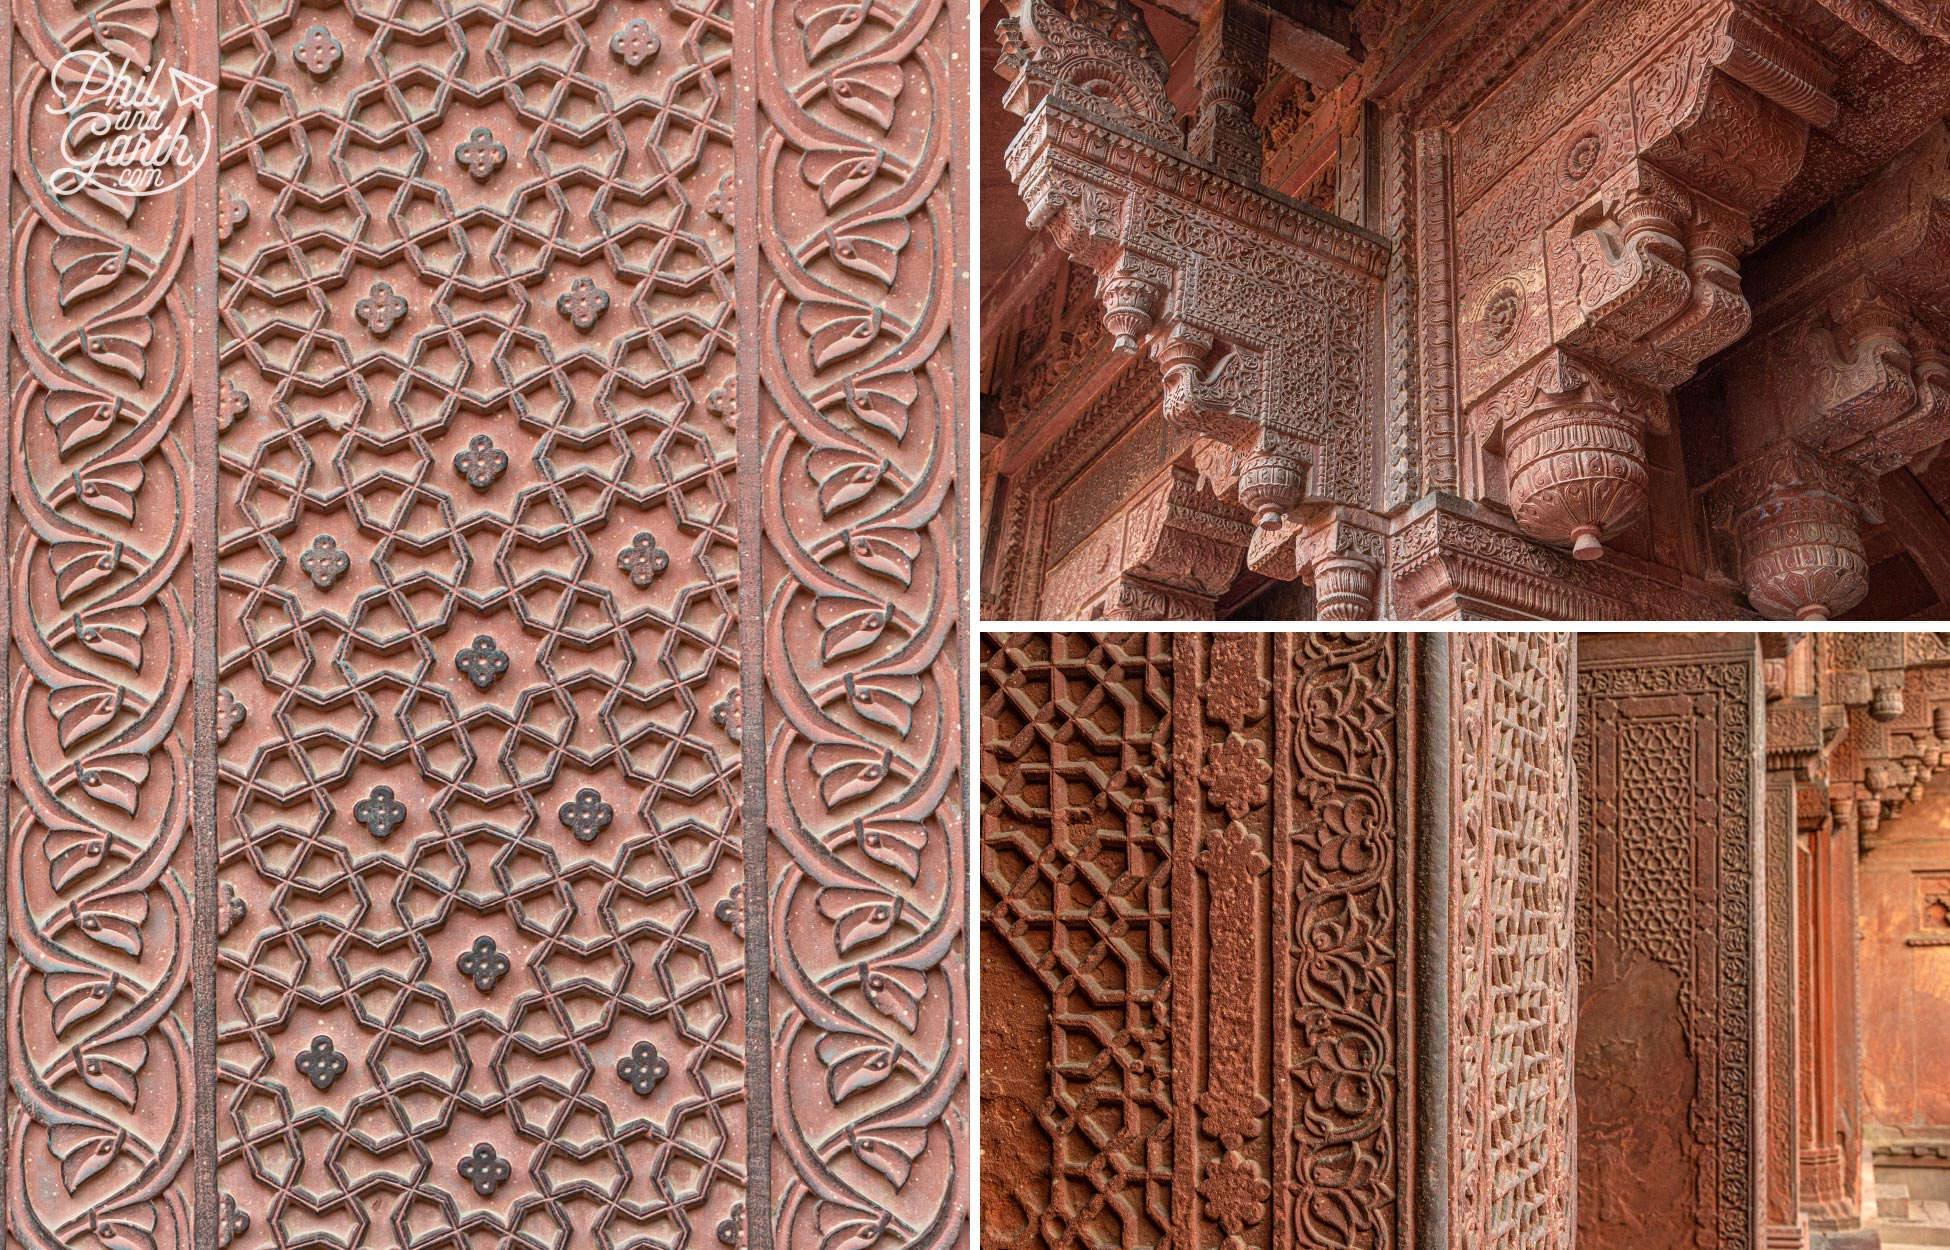 Details of the bas-reliefs in the courtyard - a blend of Hindu and Persian styles